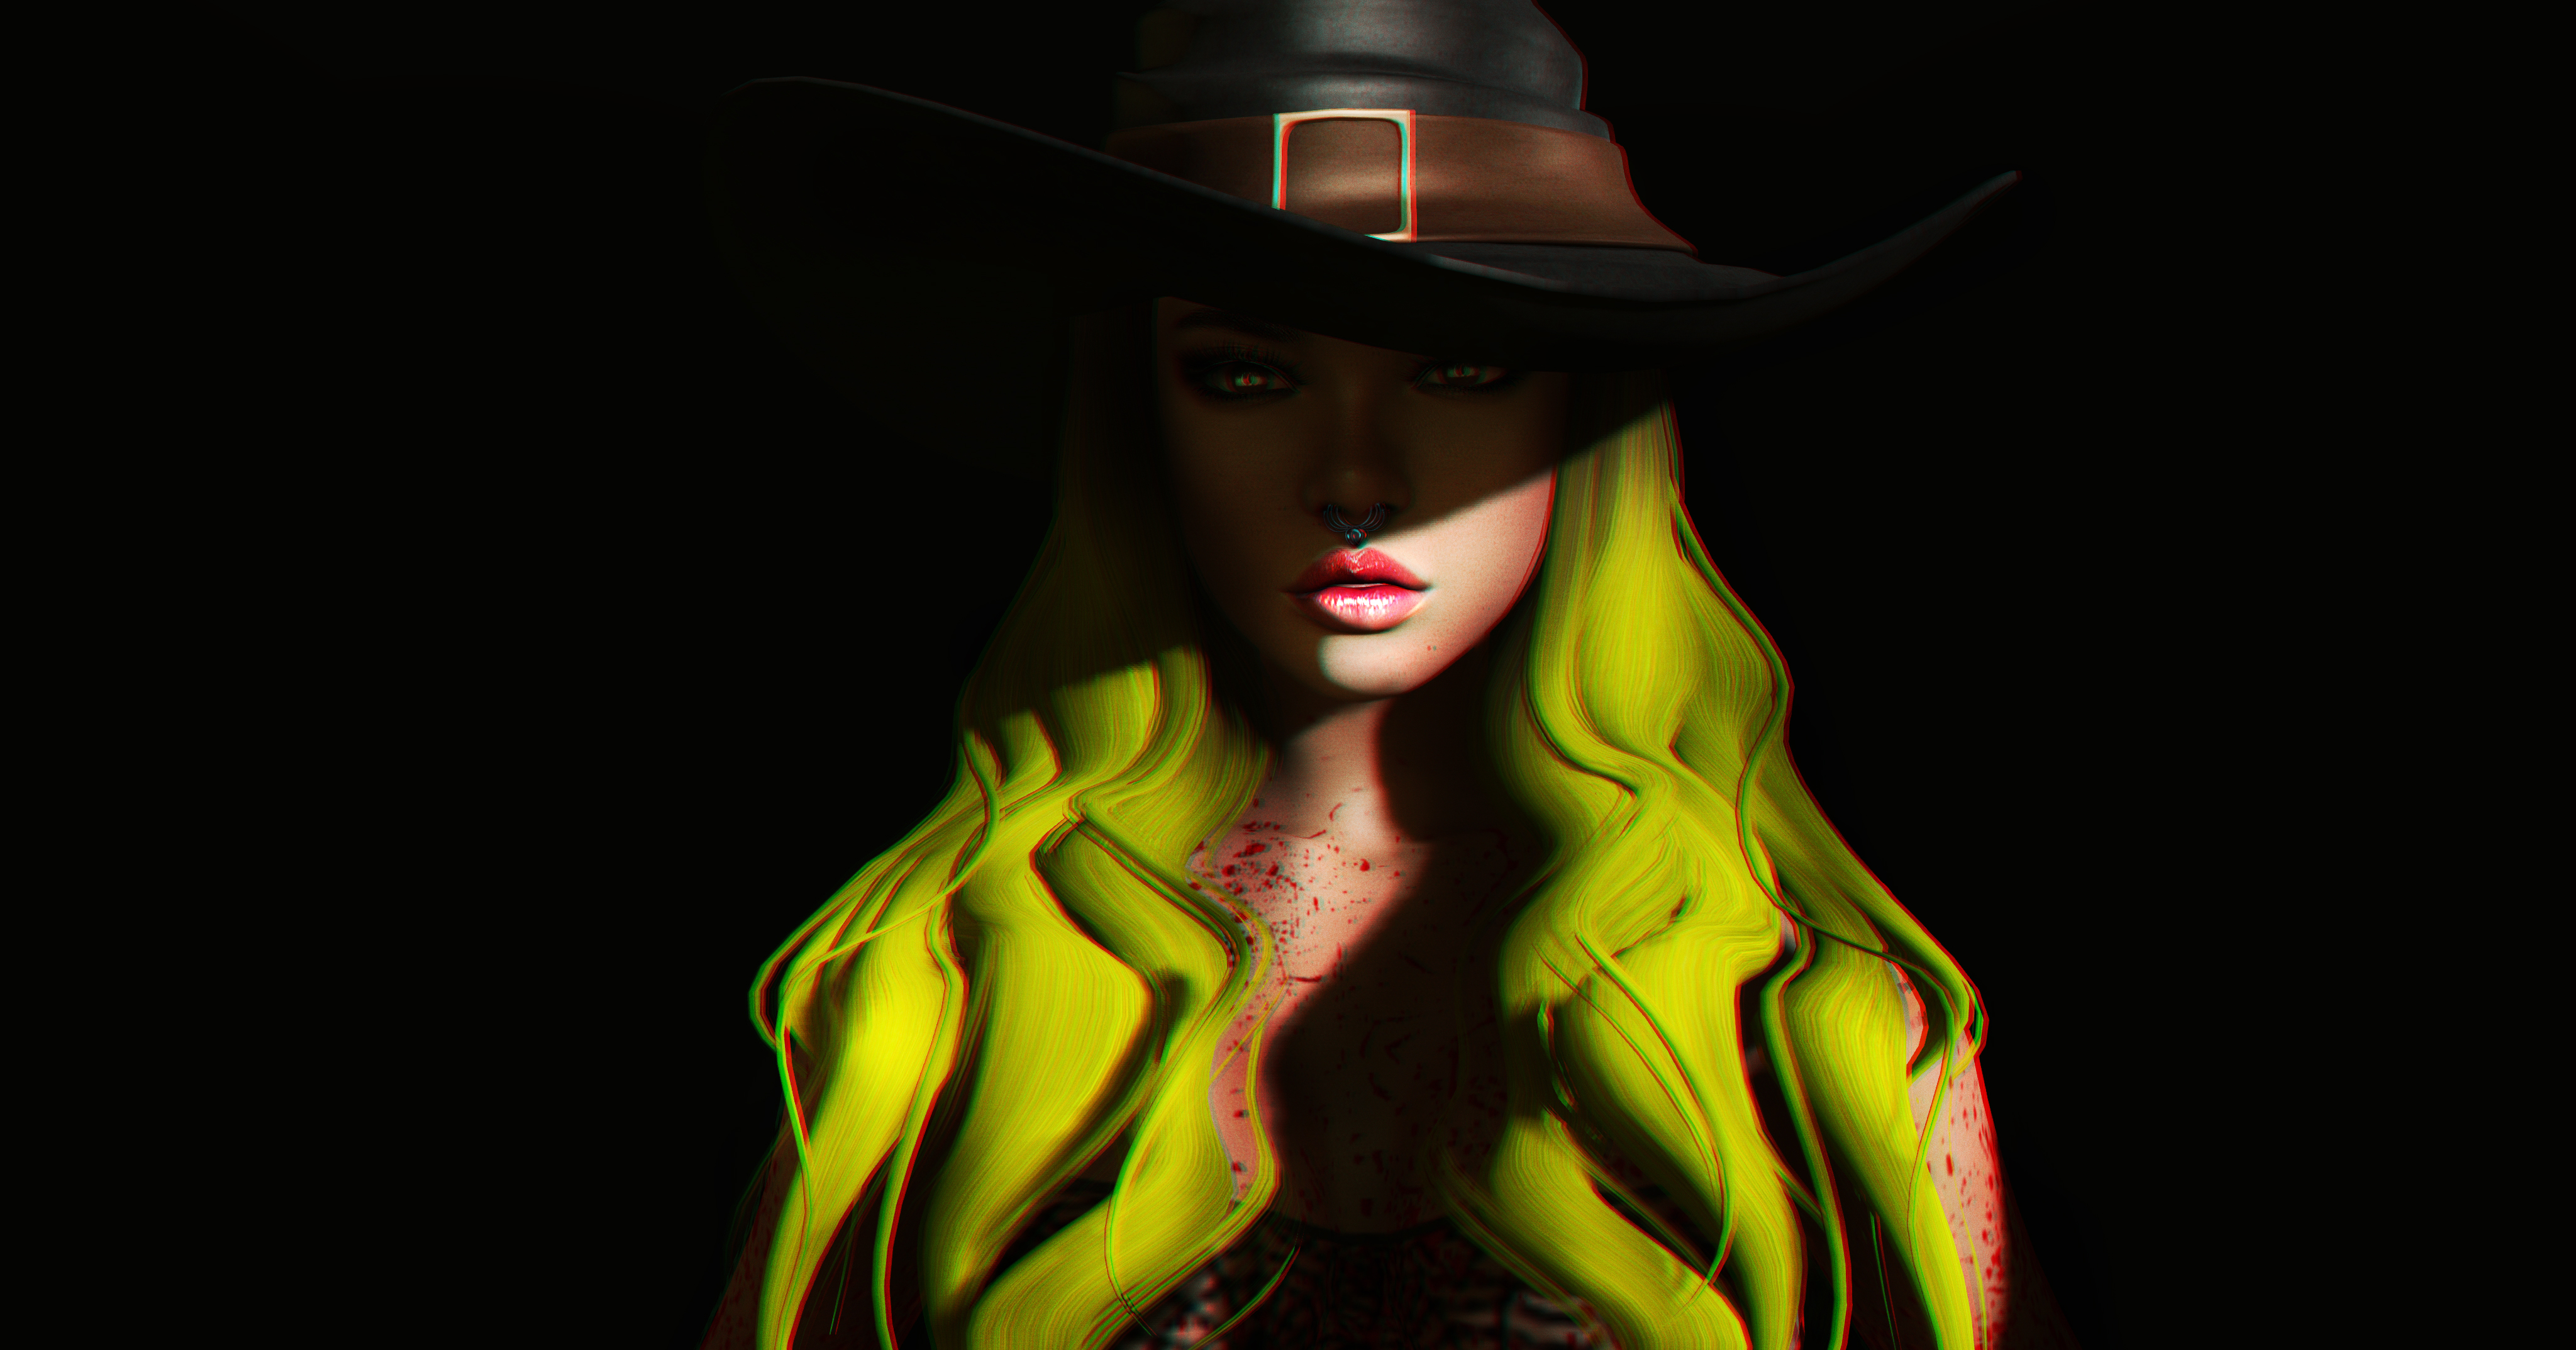 67331 download wallpaper Halloween, Art, 3D, Shadow, Girl, Hat screensavers and pictures for free